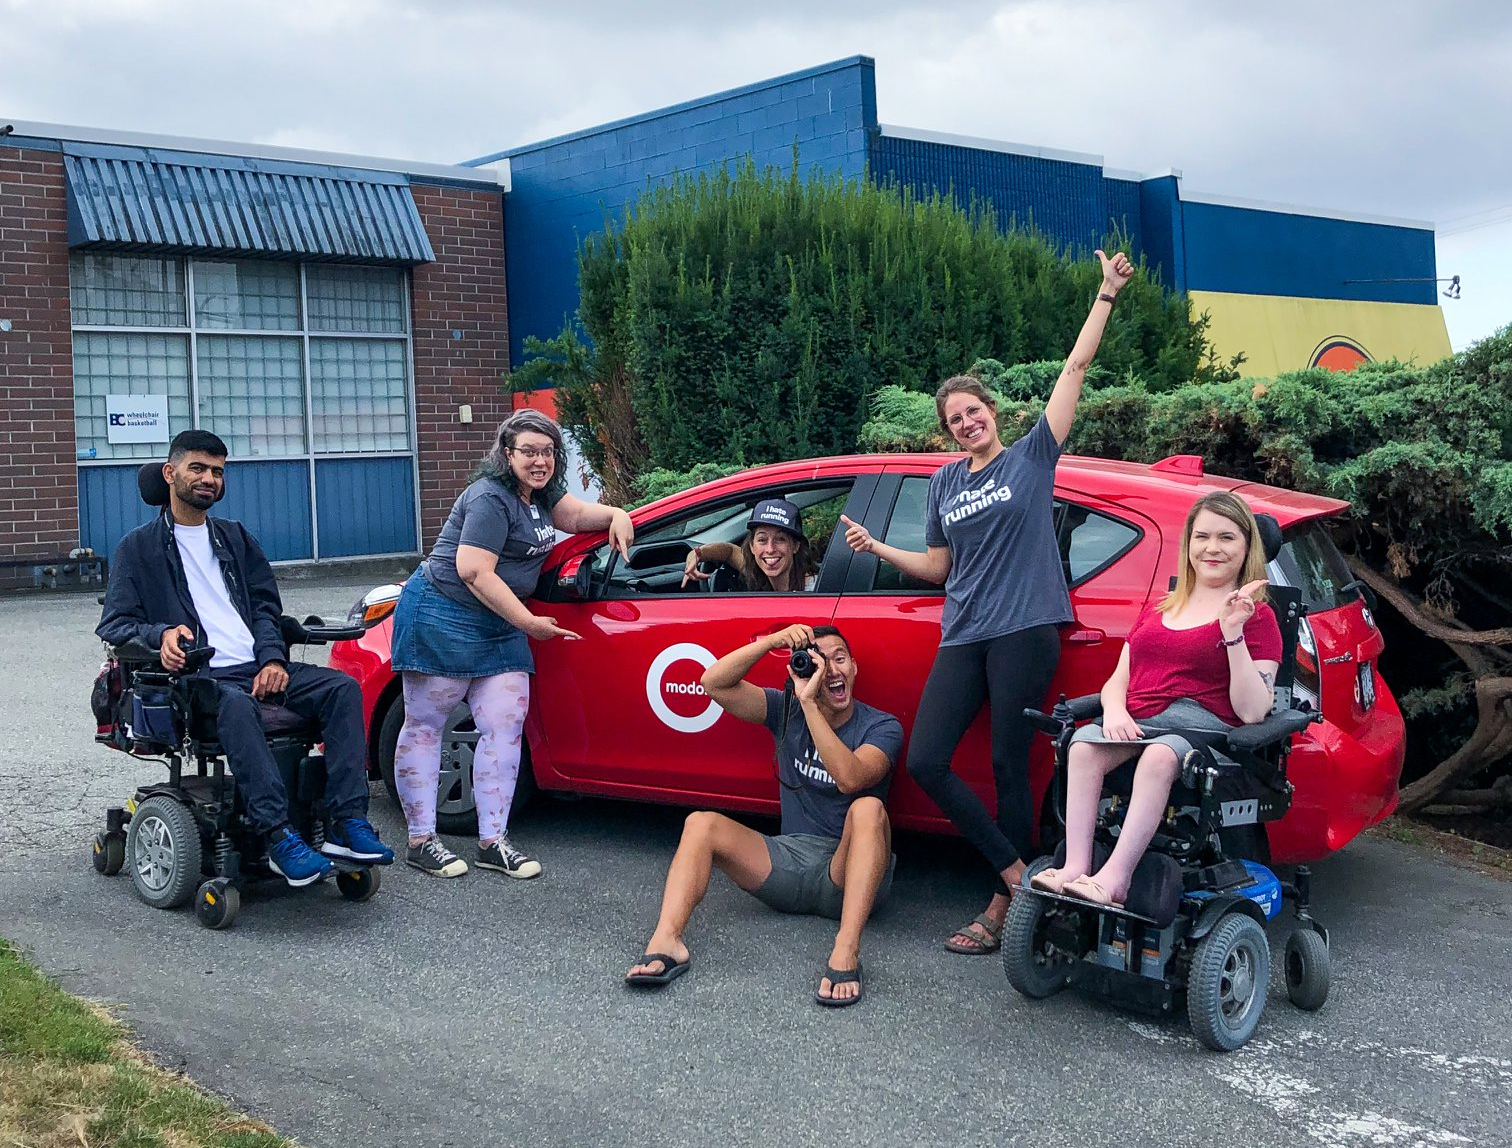 a group photo of people posing in front of a red Modo car. People in the group photo are able bodied and in wheelhcairs.